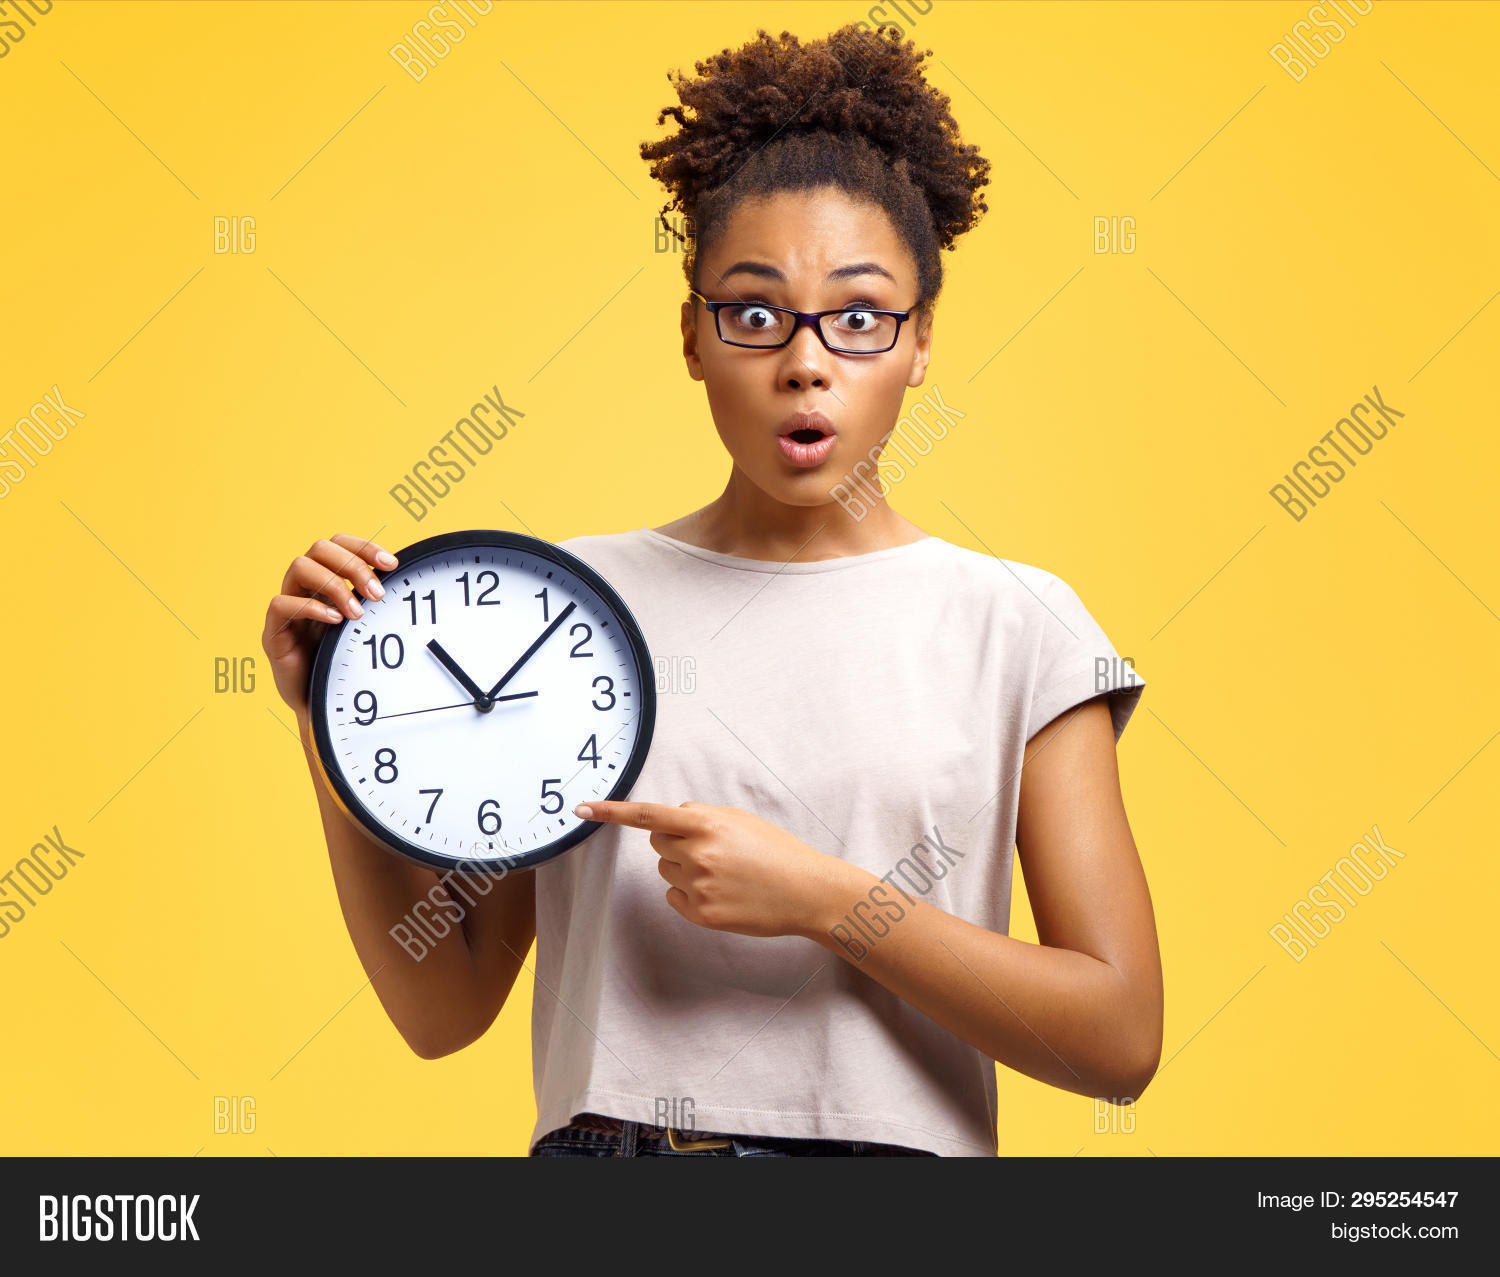 afro,alarm,astonished,attractive,background,beauty,casual,clock,colorful,concept,curly,demonstrates,emotional,enjoying,expressions,eyes,face,facial,female,forefinger,gaze,gesture,girl,glad,hair,hands,happy,hold,image,latin,looking,model,open,outfit,punctuality,shirt,shock,skinned,spanish,student,surprised,teenager,time,woman,work,worker,yellow,young